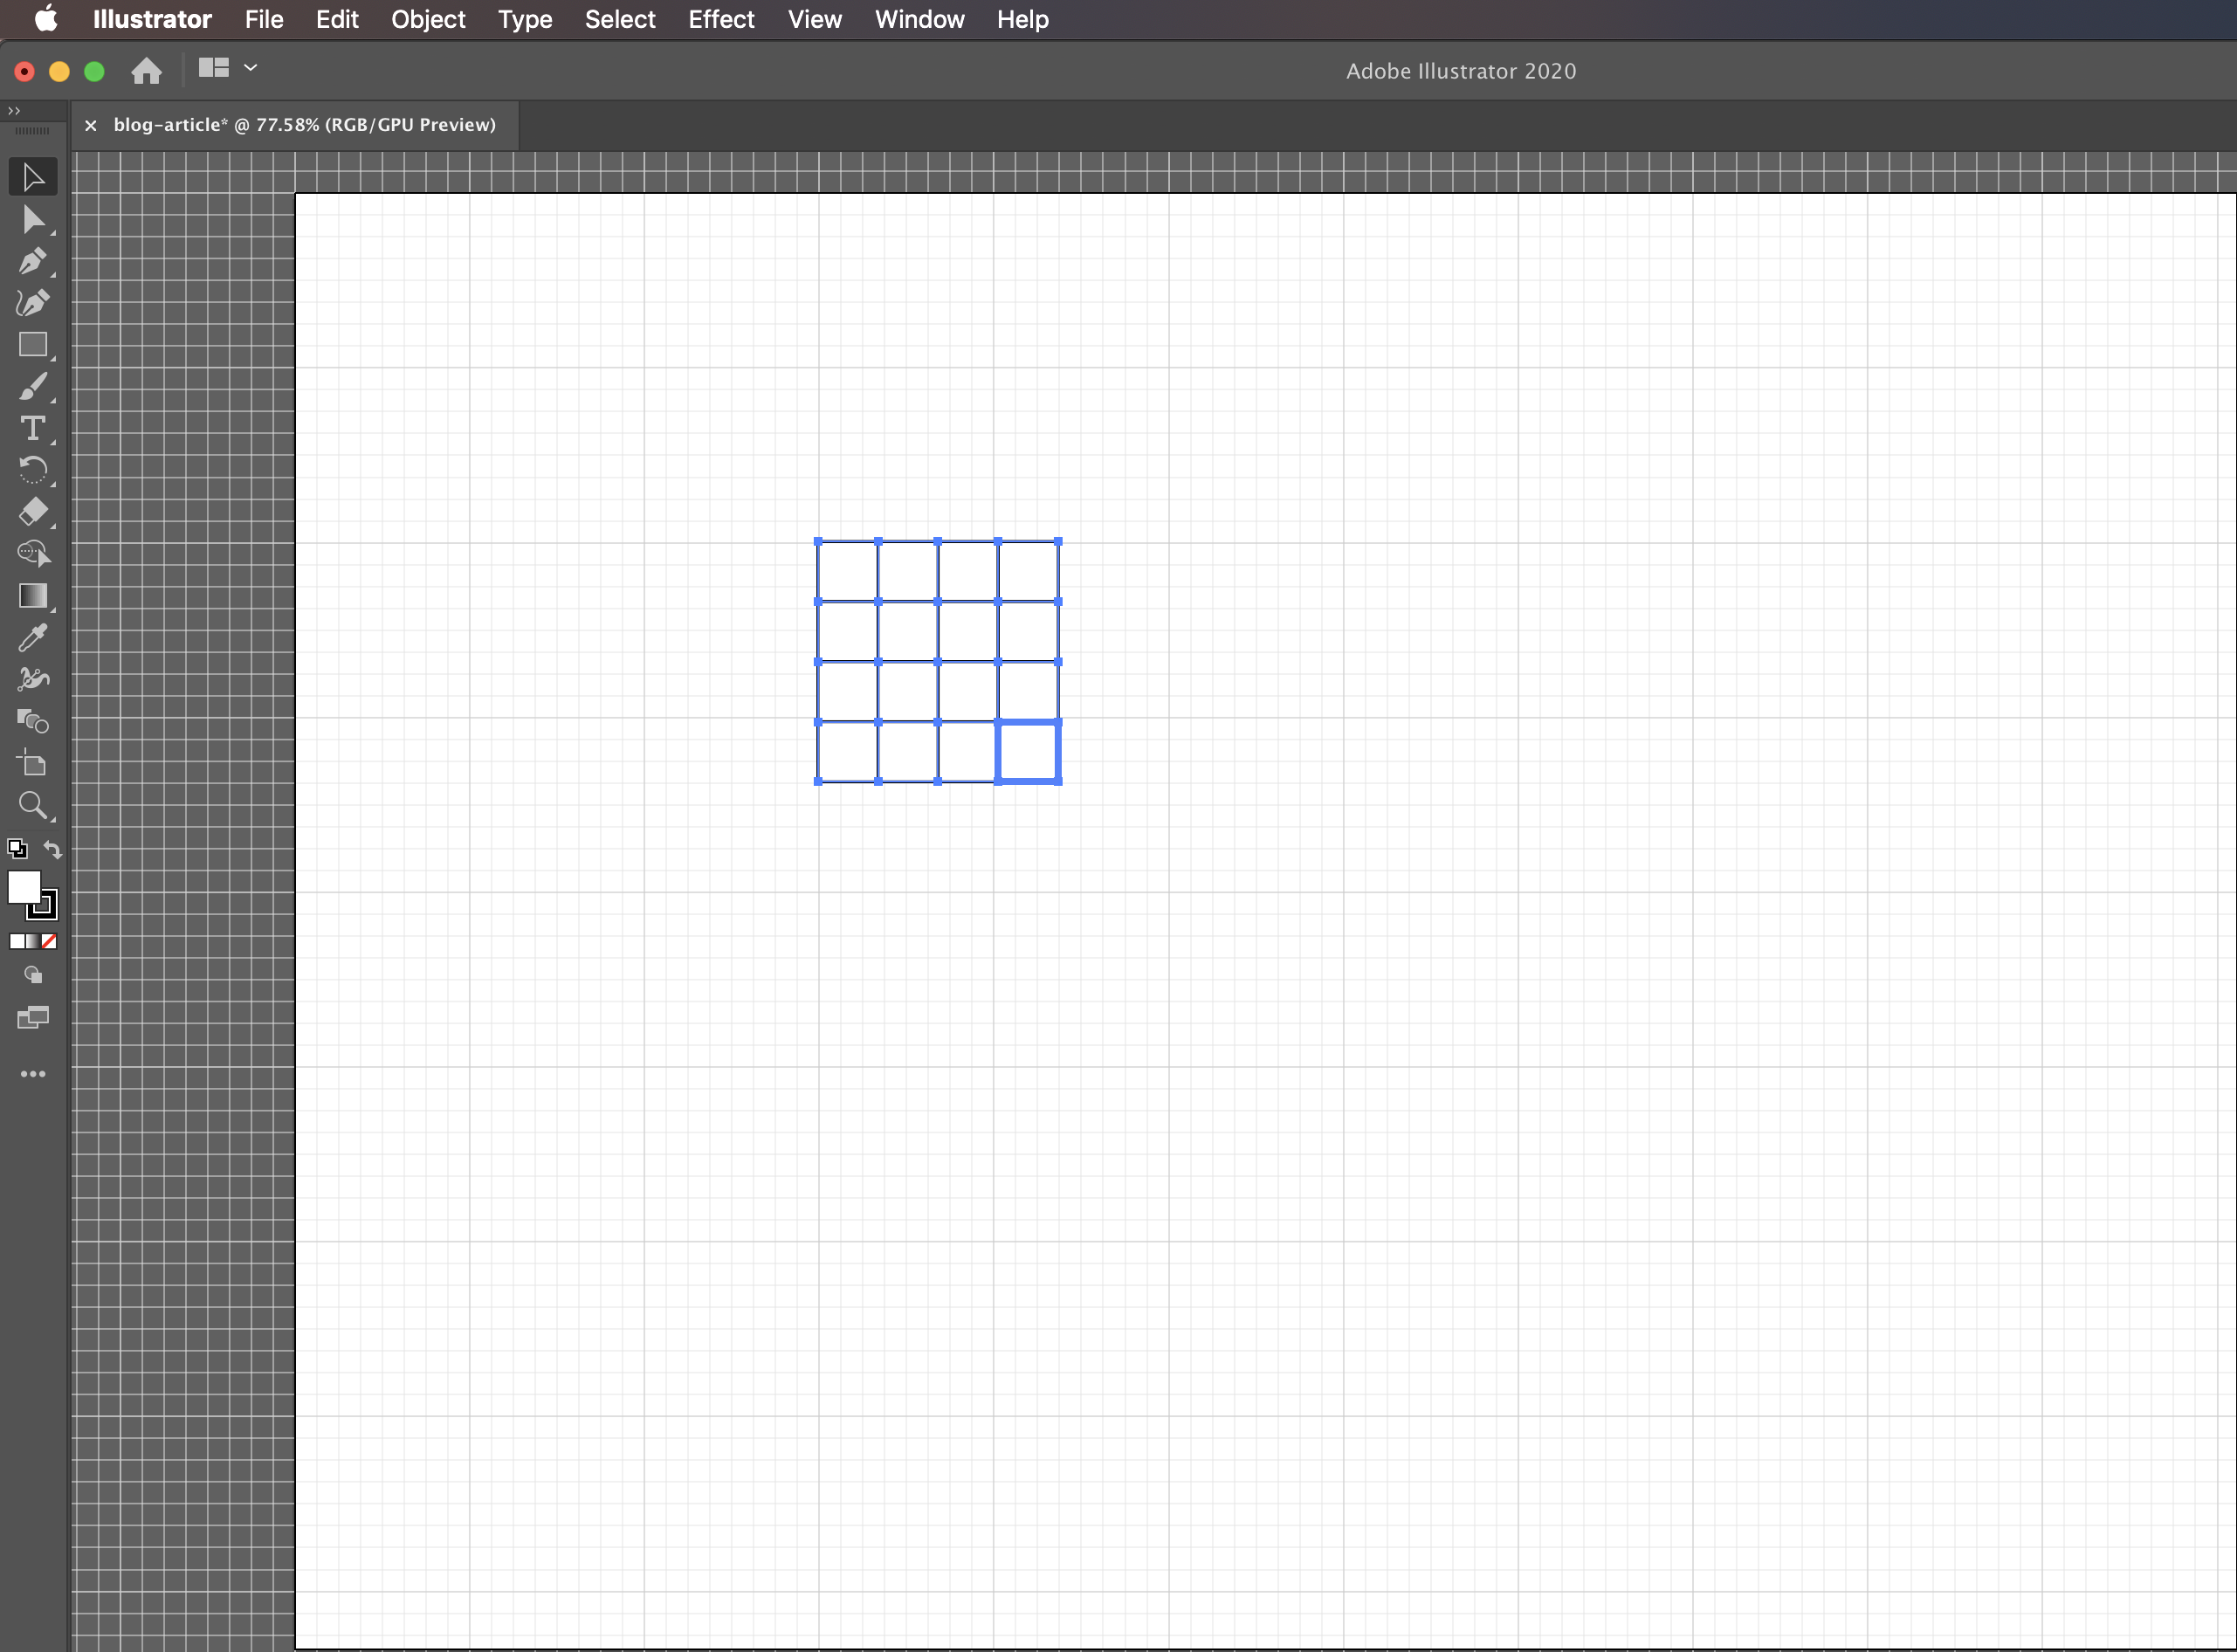 Final grid in Adobe Illustrator that can be used to create matrices in Computer Science diagrams.